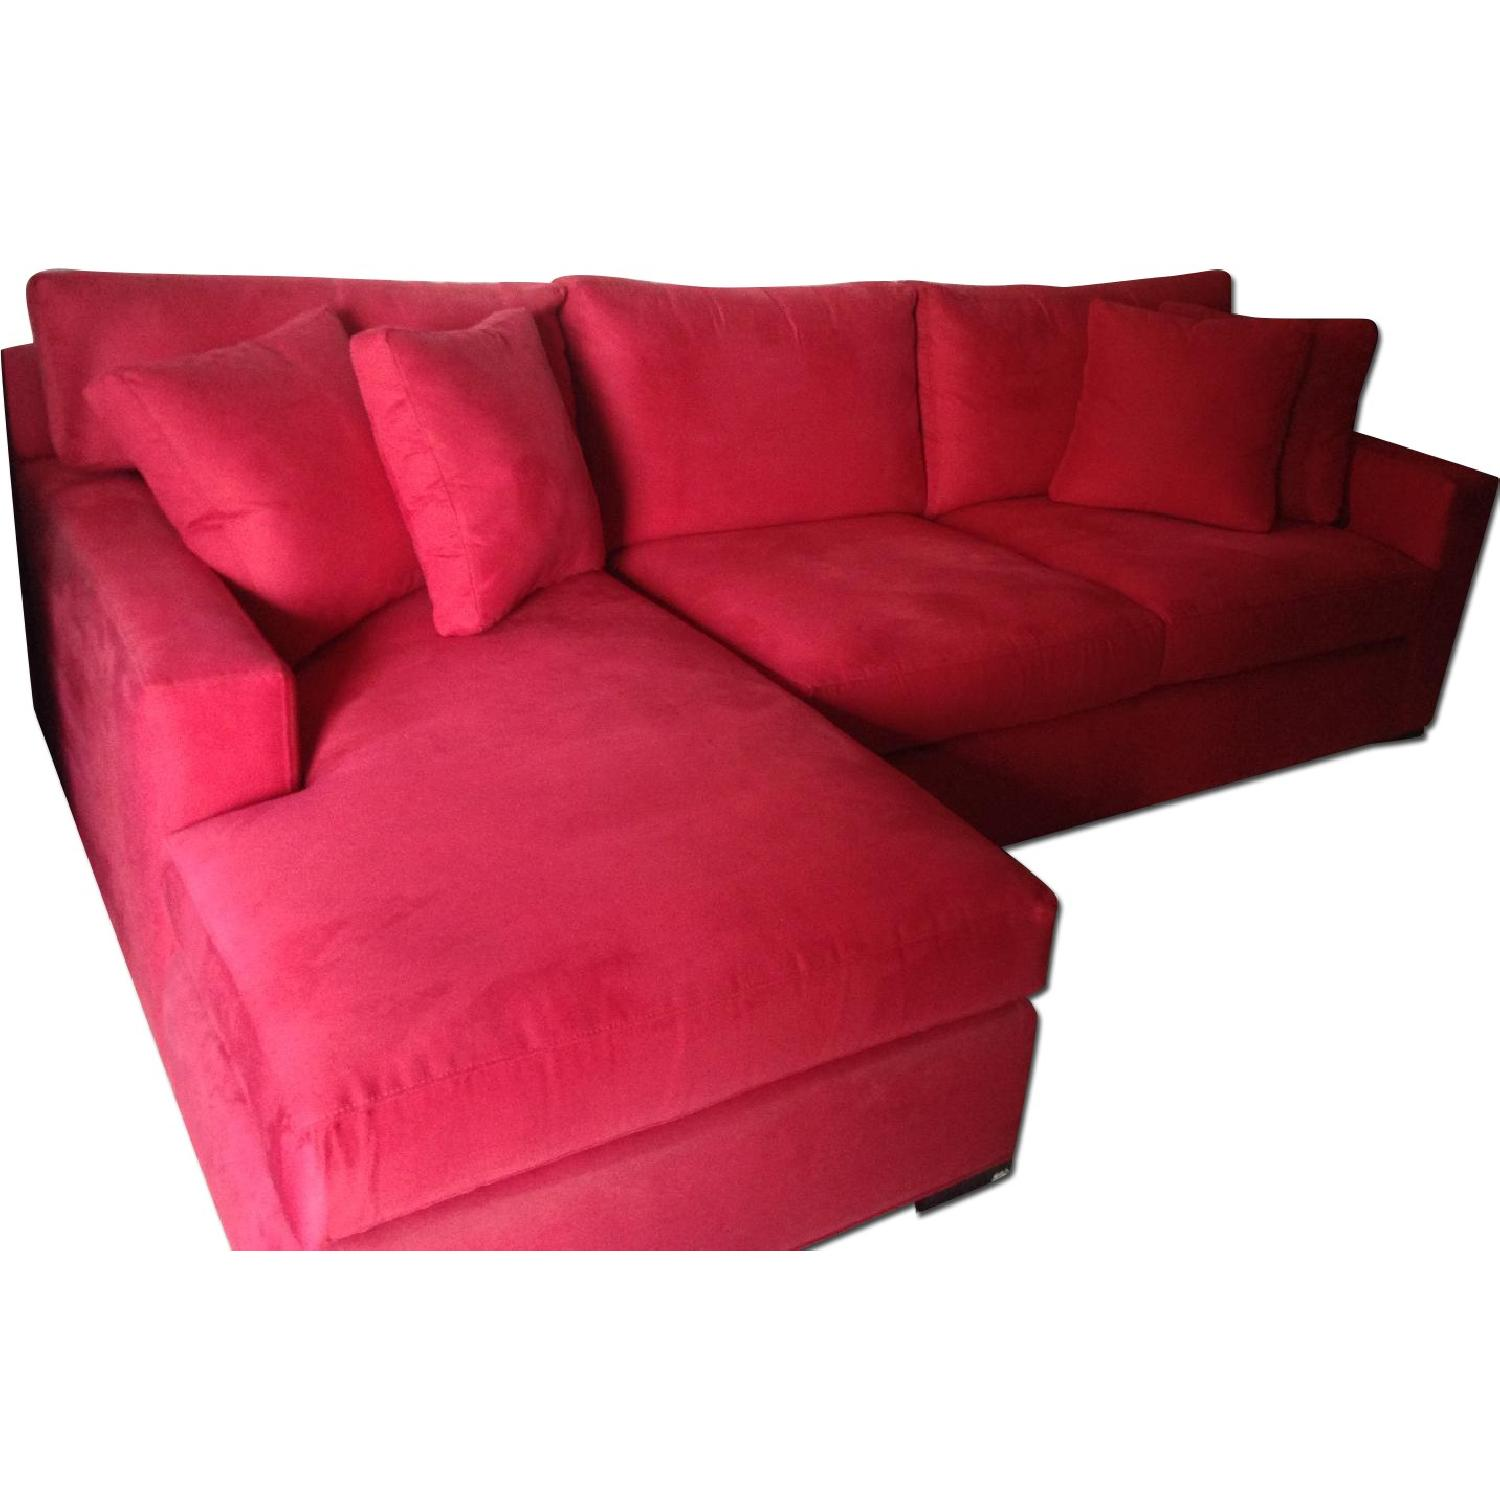 Crate & Barrel Red 2-Piece Sectional Sofa - image-0